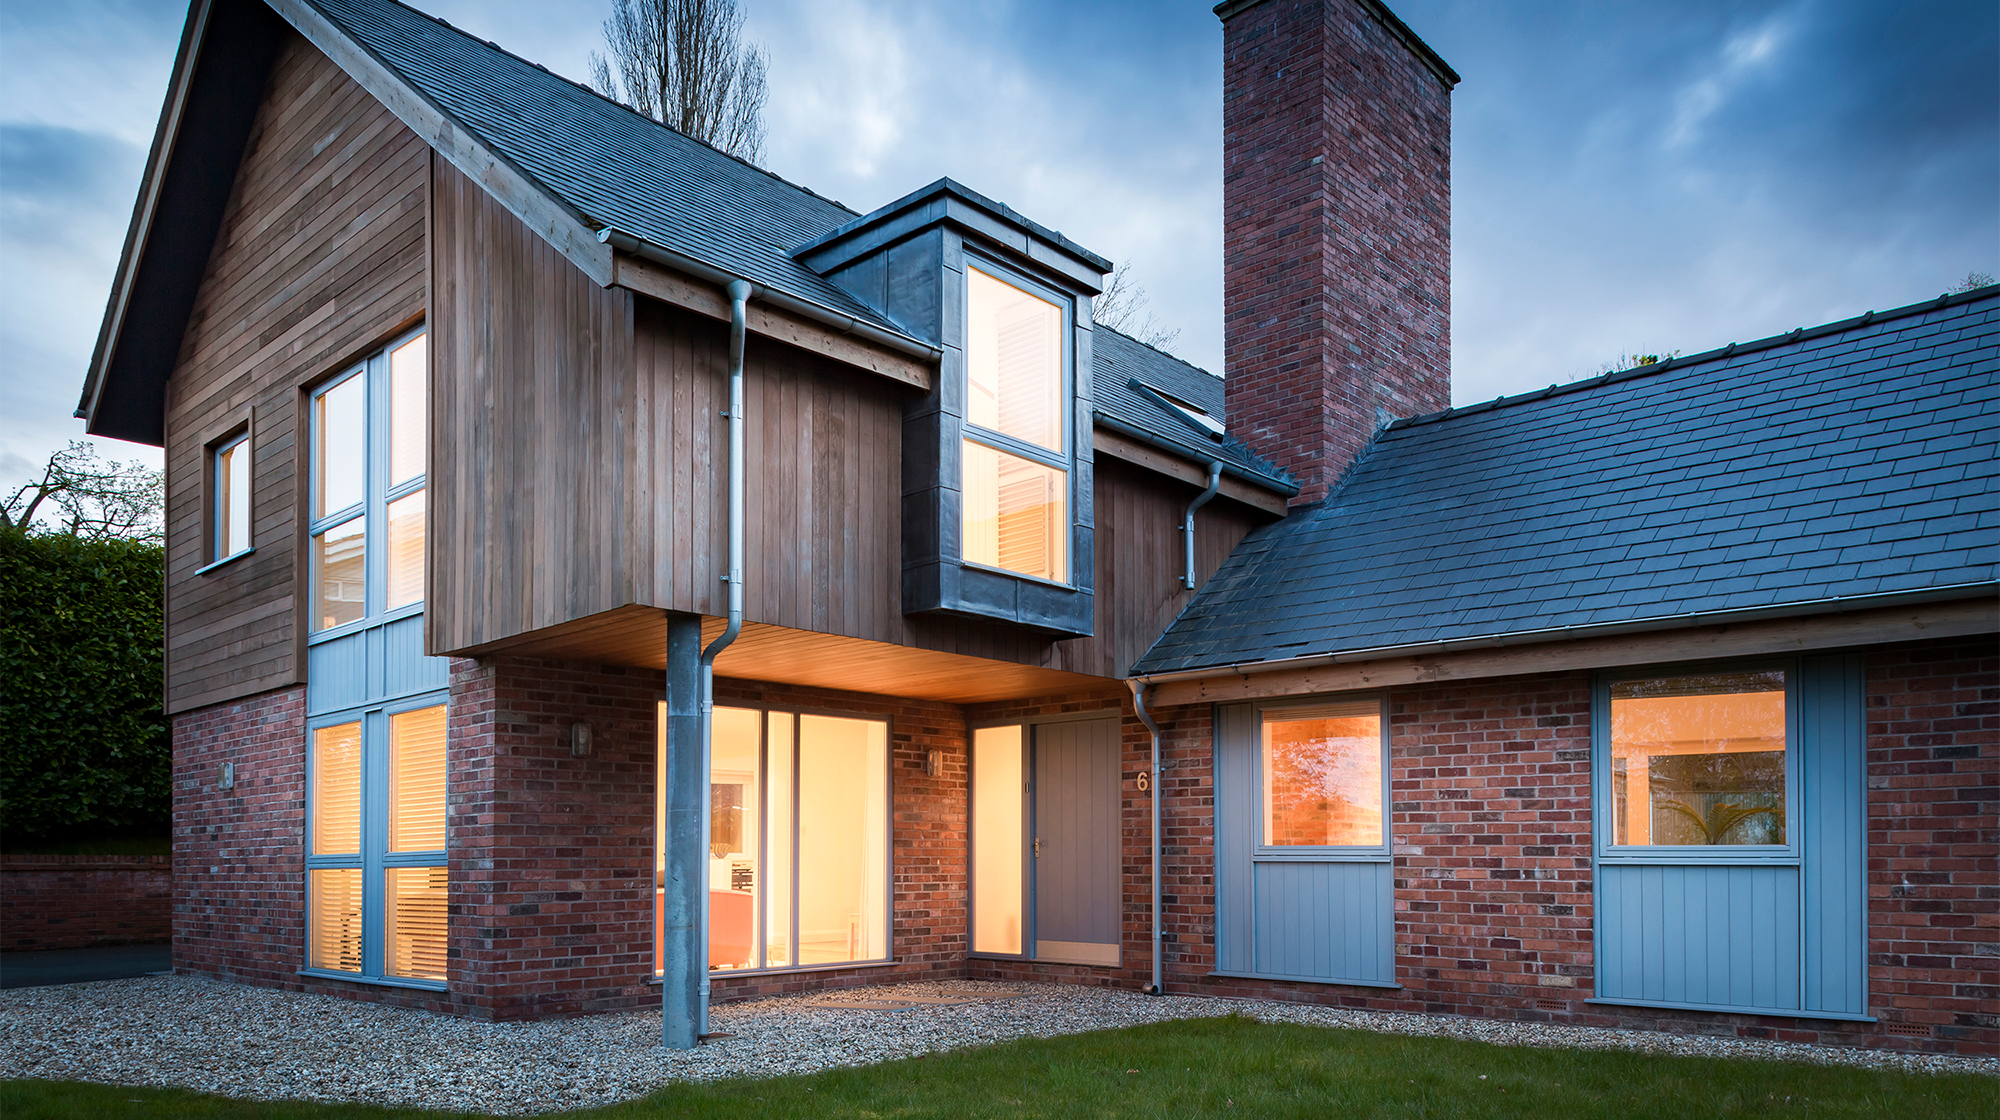 Contemporary residential property - front view of private house exterior at dusk